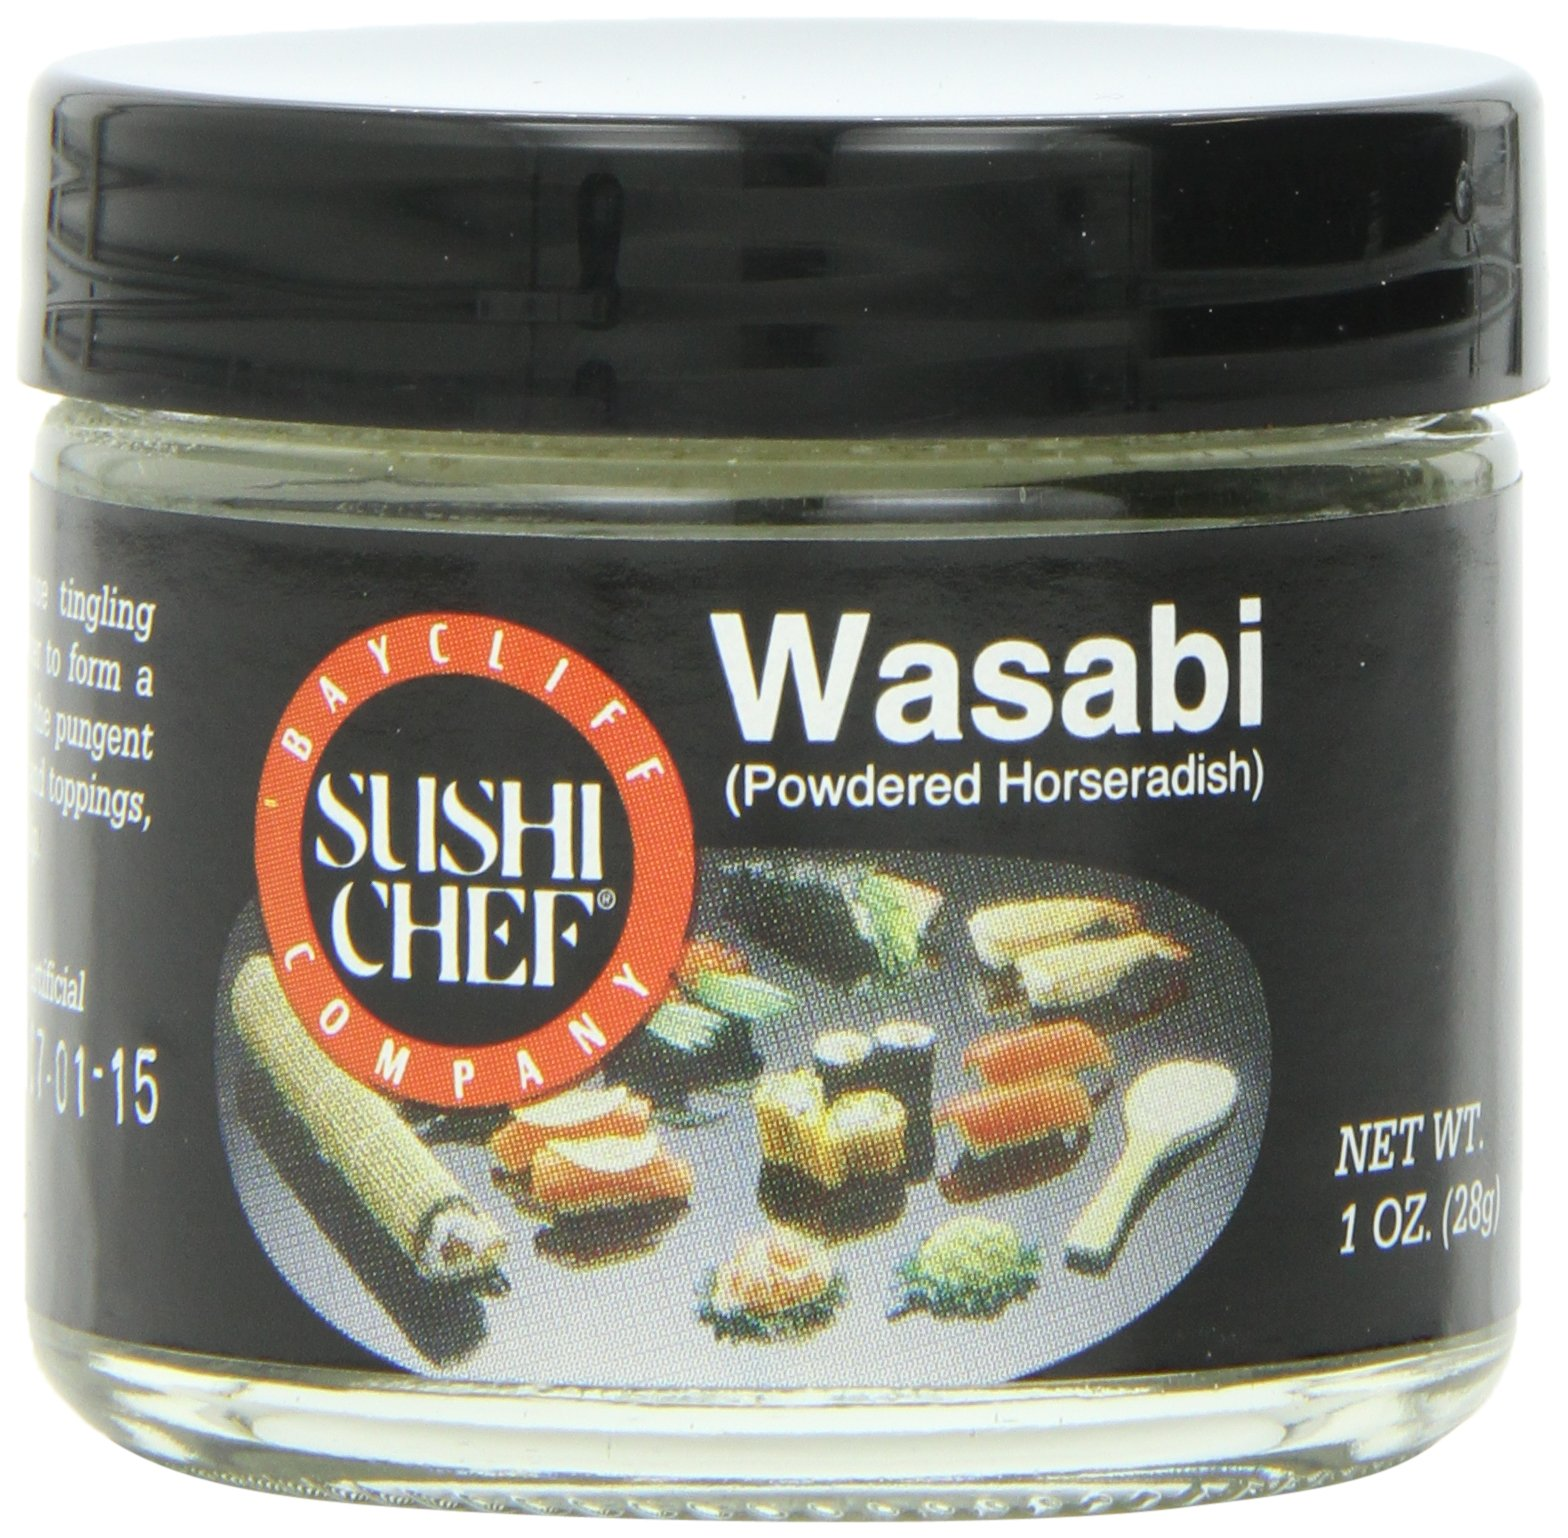 Sushi Chef Wasabi (Powdered Green Horseradish), 1-Ounce Glass Jars (Pack of 6)